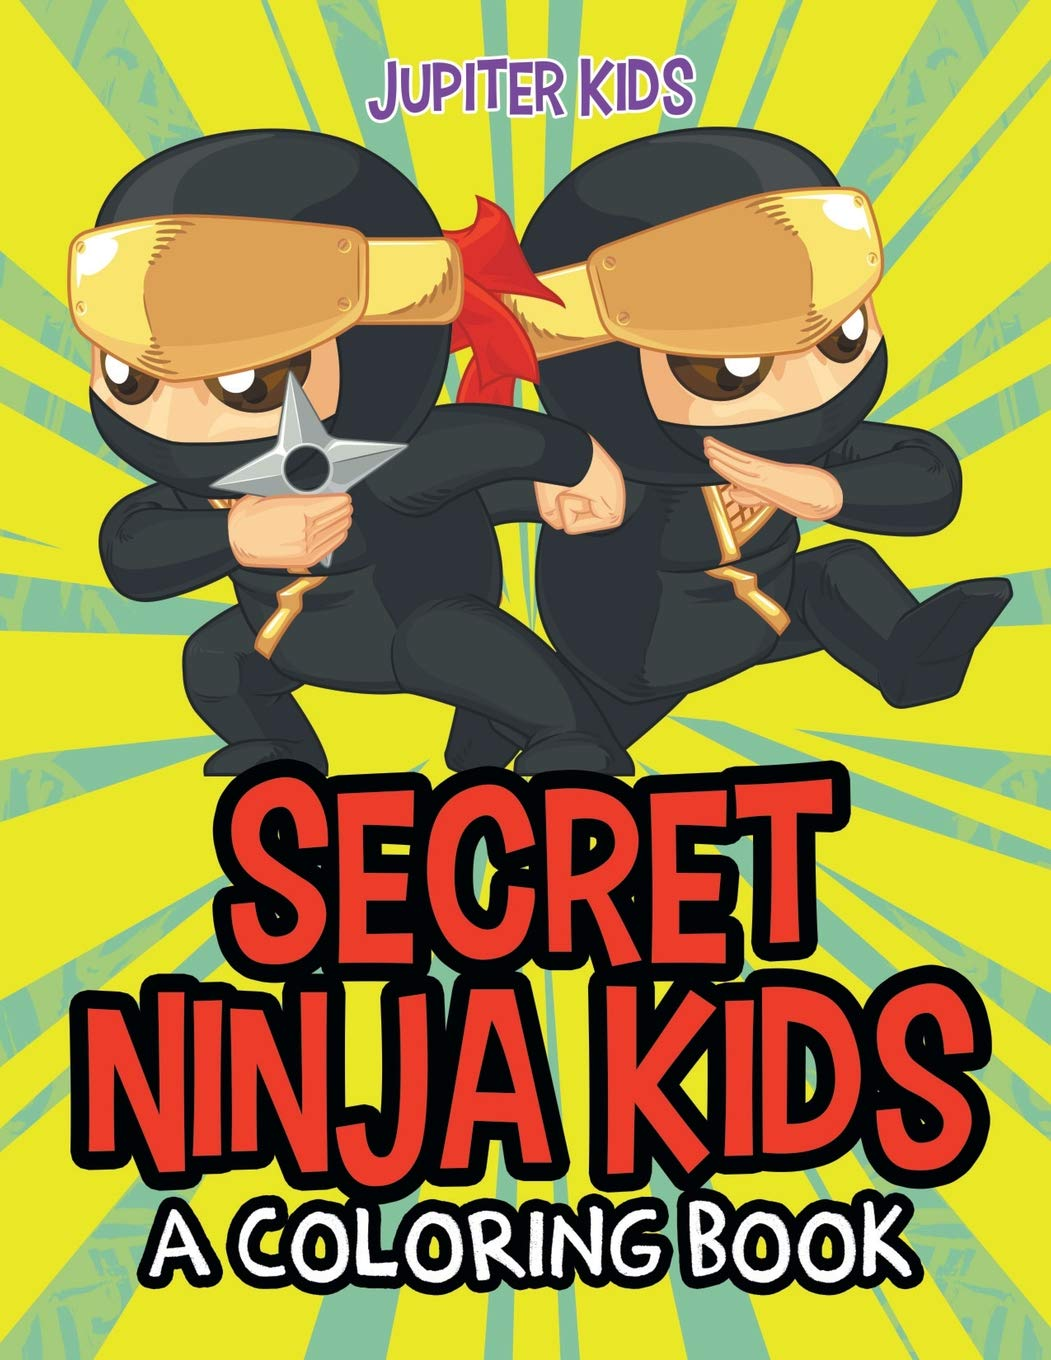 Secret Ninja Kids (A Coloring Book): Amazon.es: Jupiter Kids ...